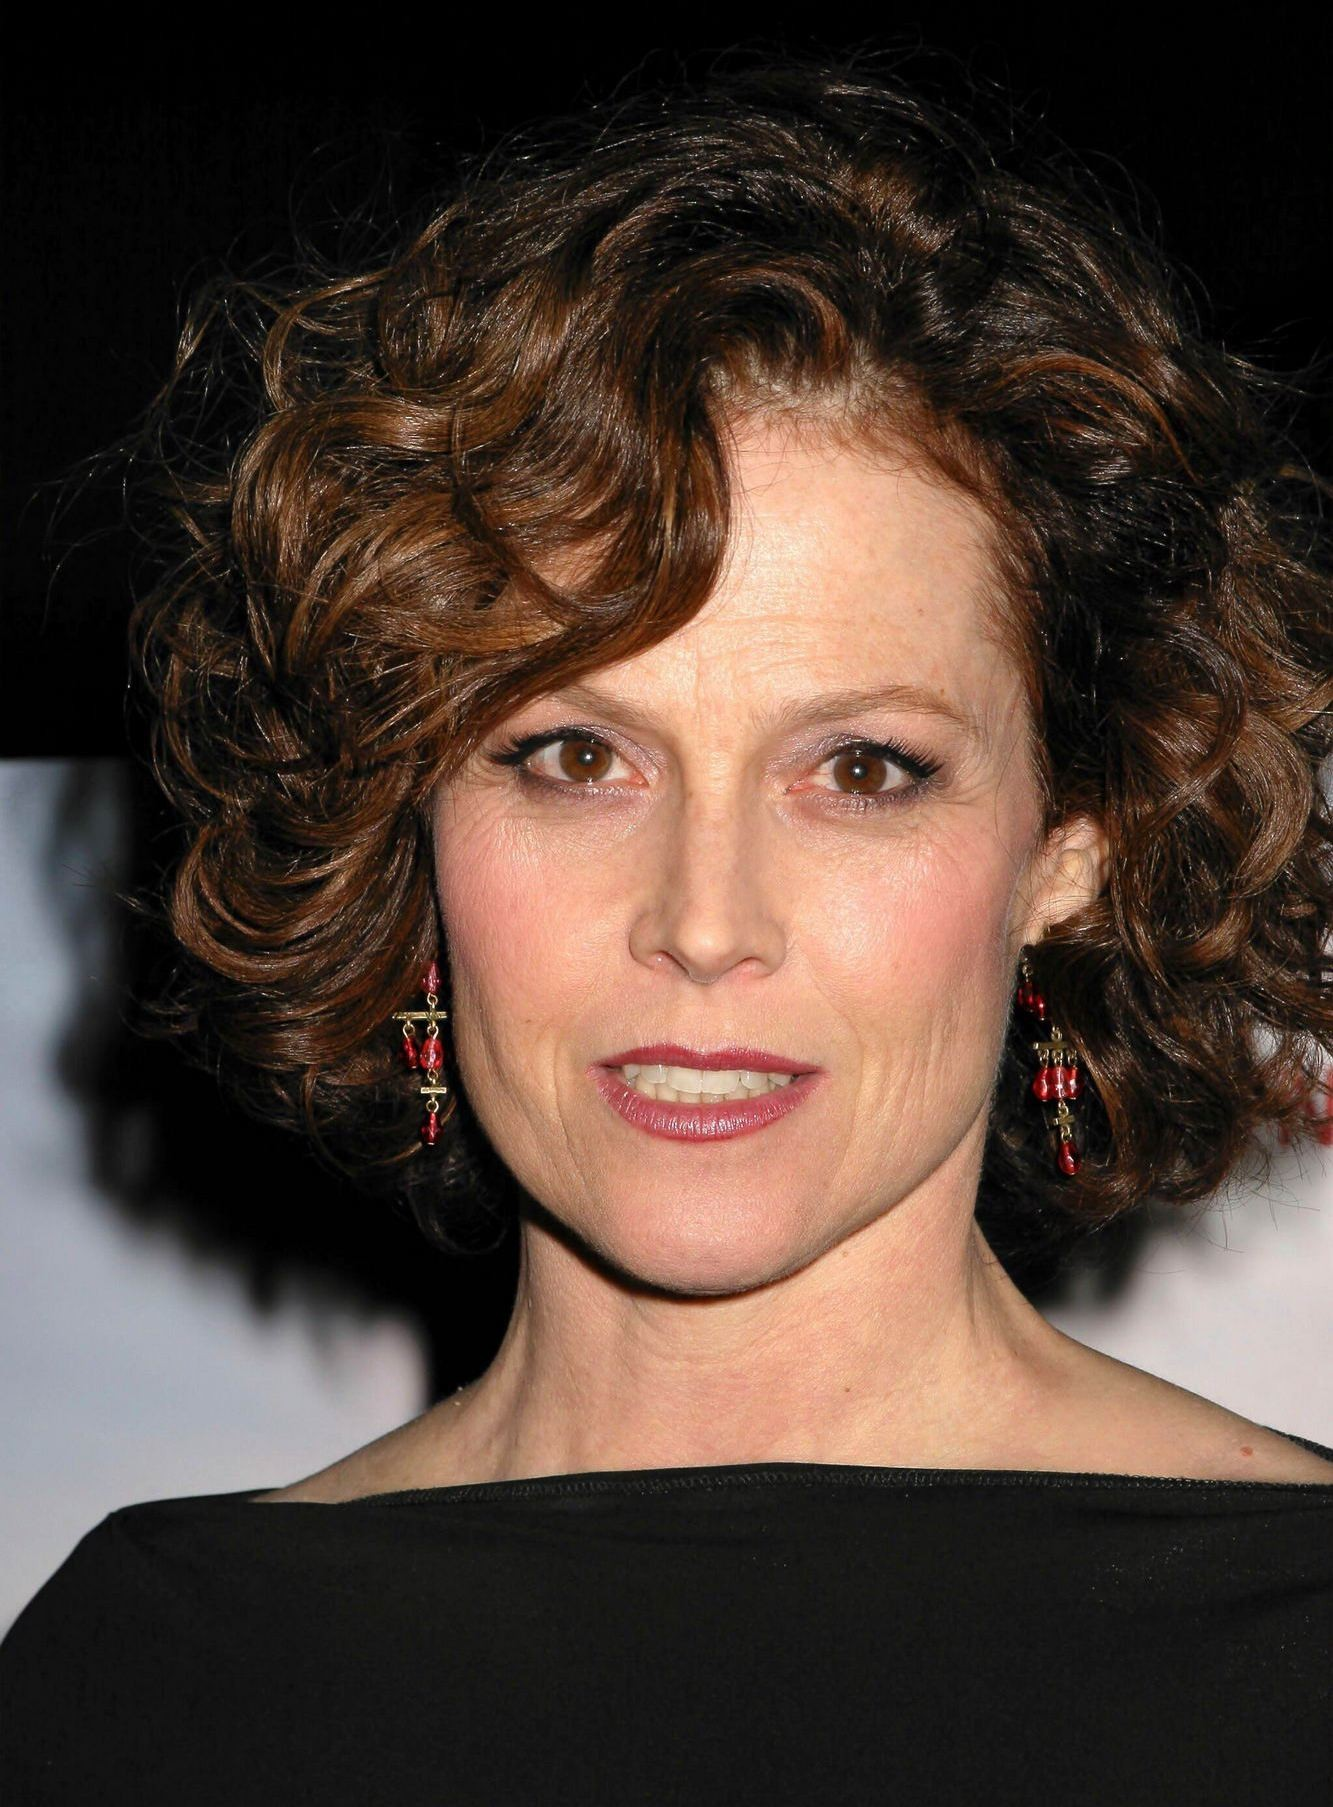 Sigourney Weaver Net Worth